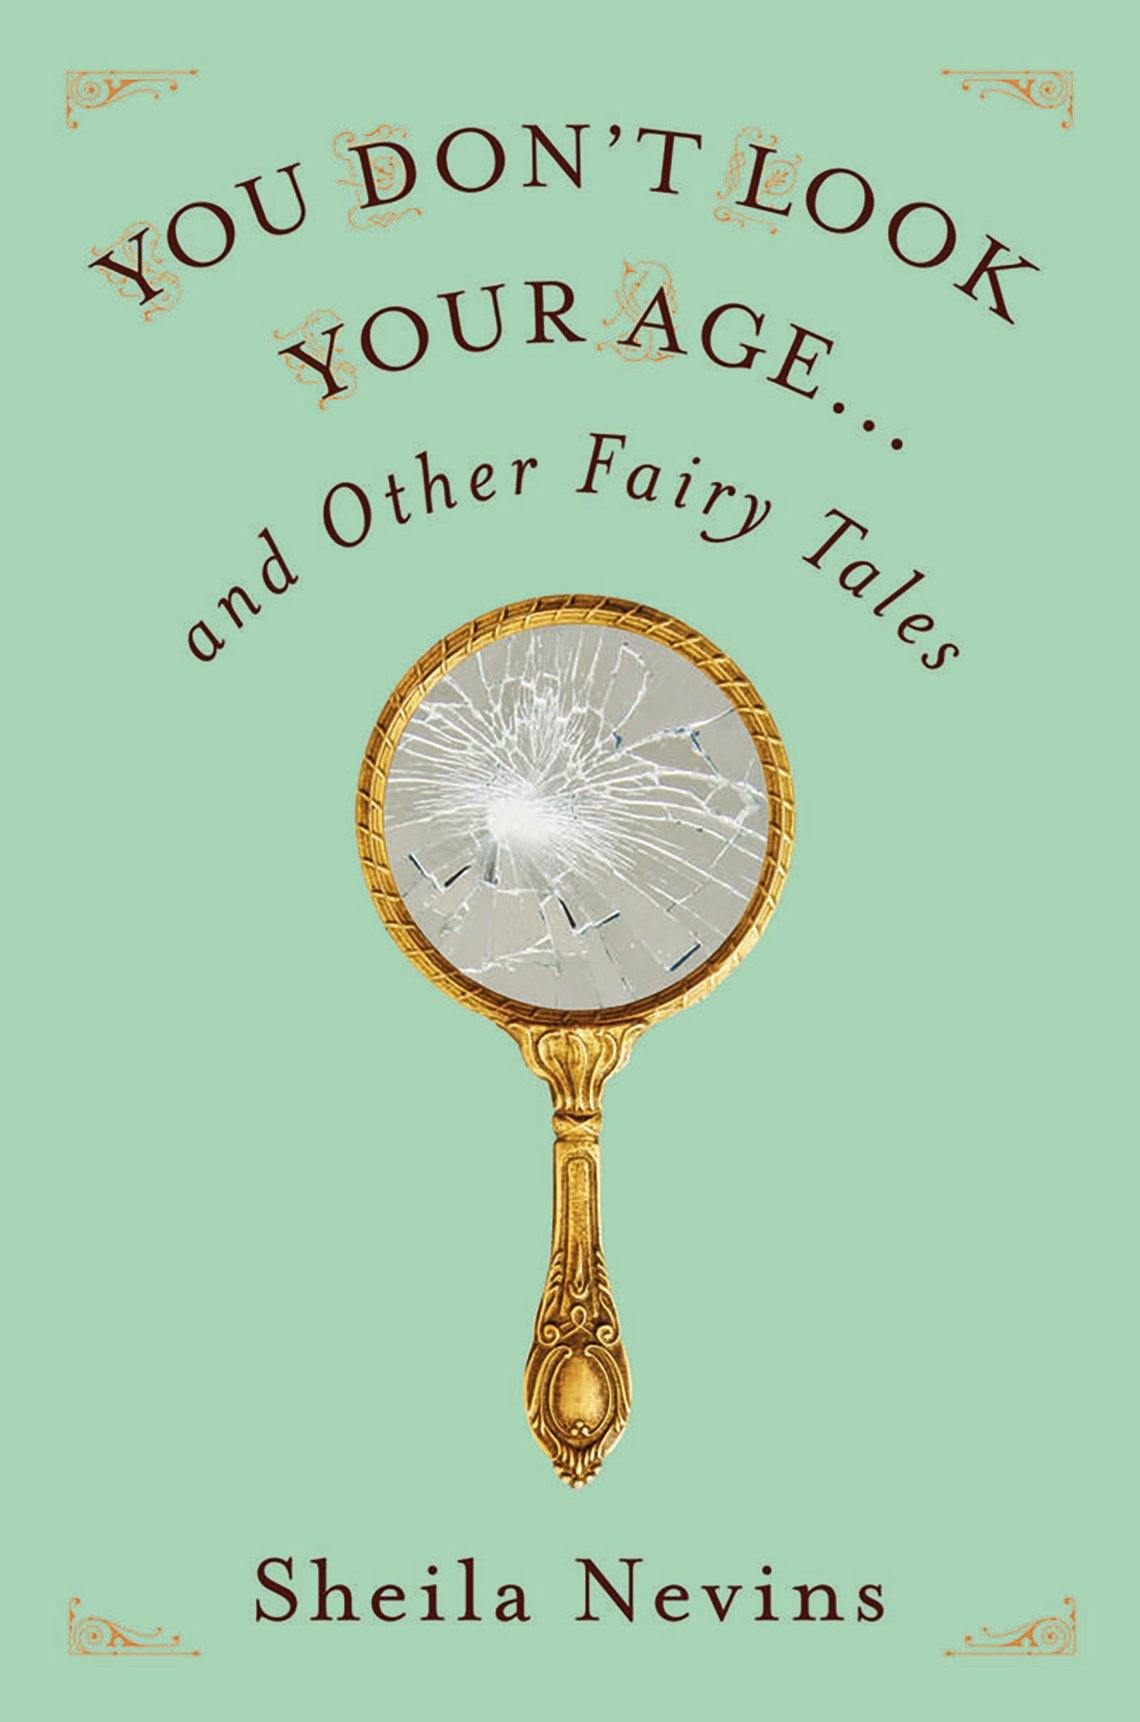 You Don't Look Your Age… And Other Fairy Tales, by Sheila Nevins